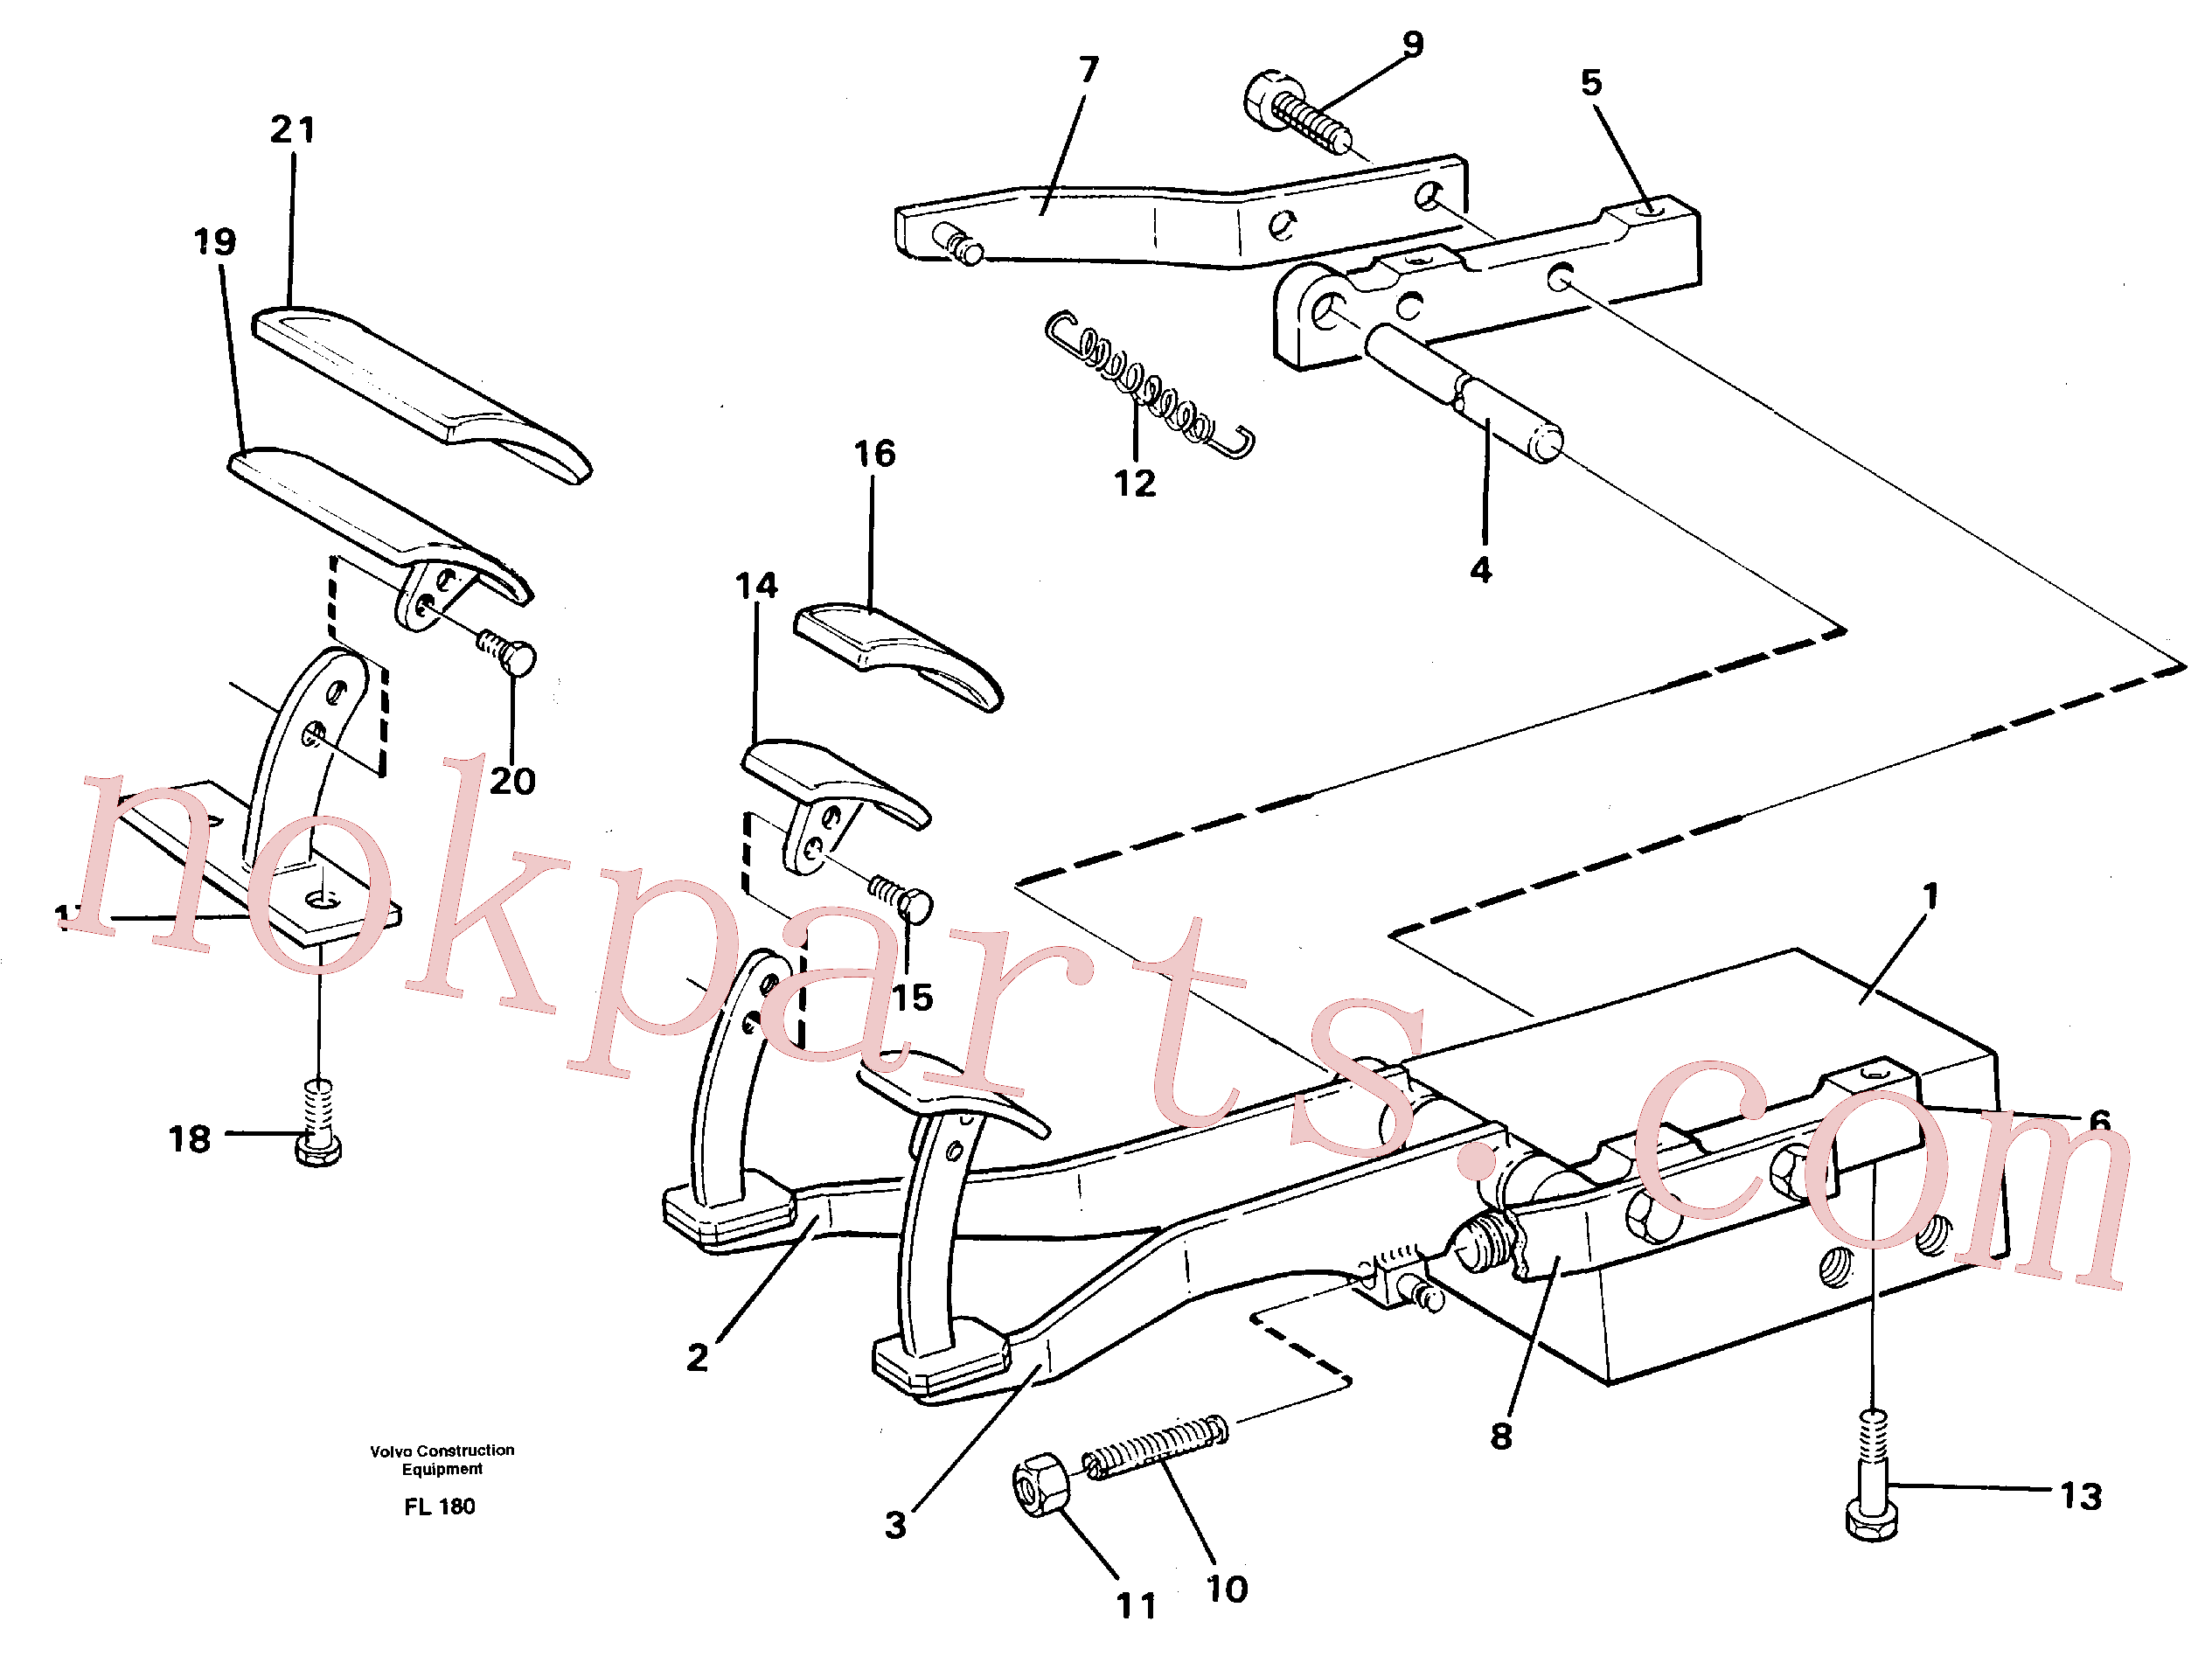 VOE14213032 for Volvo Pedal valve with foot rest(FL180 assembly)